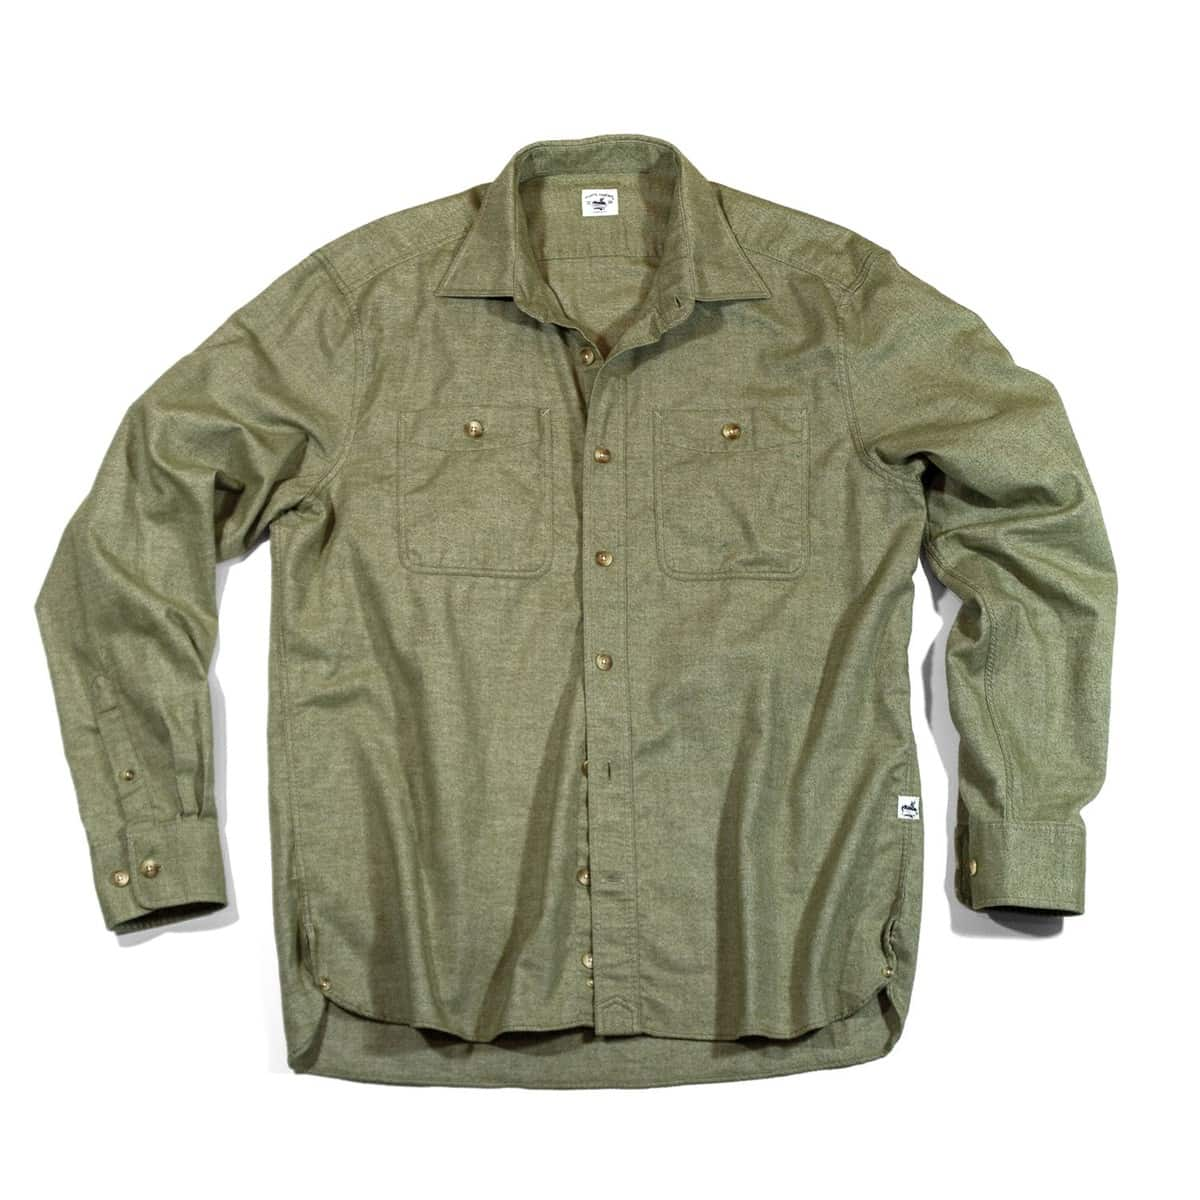 Buy The Saltwash Flannel Dock Shirt - Olive